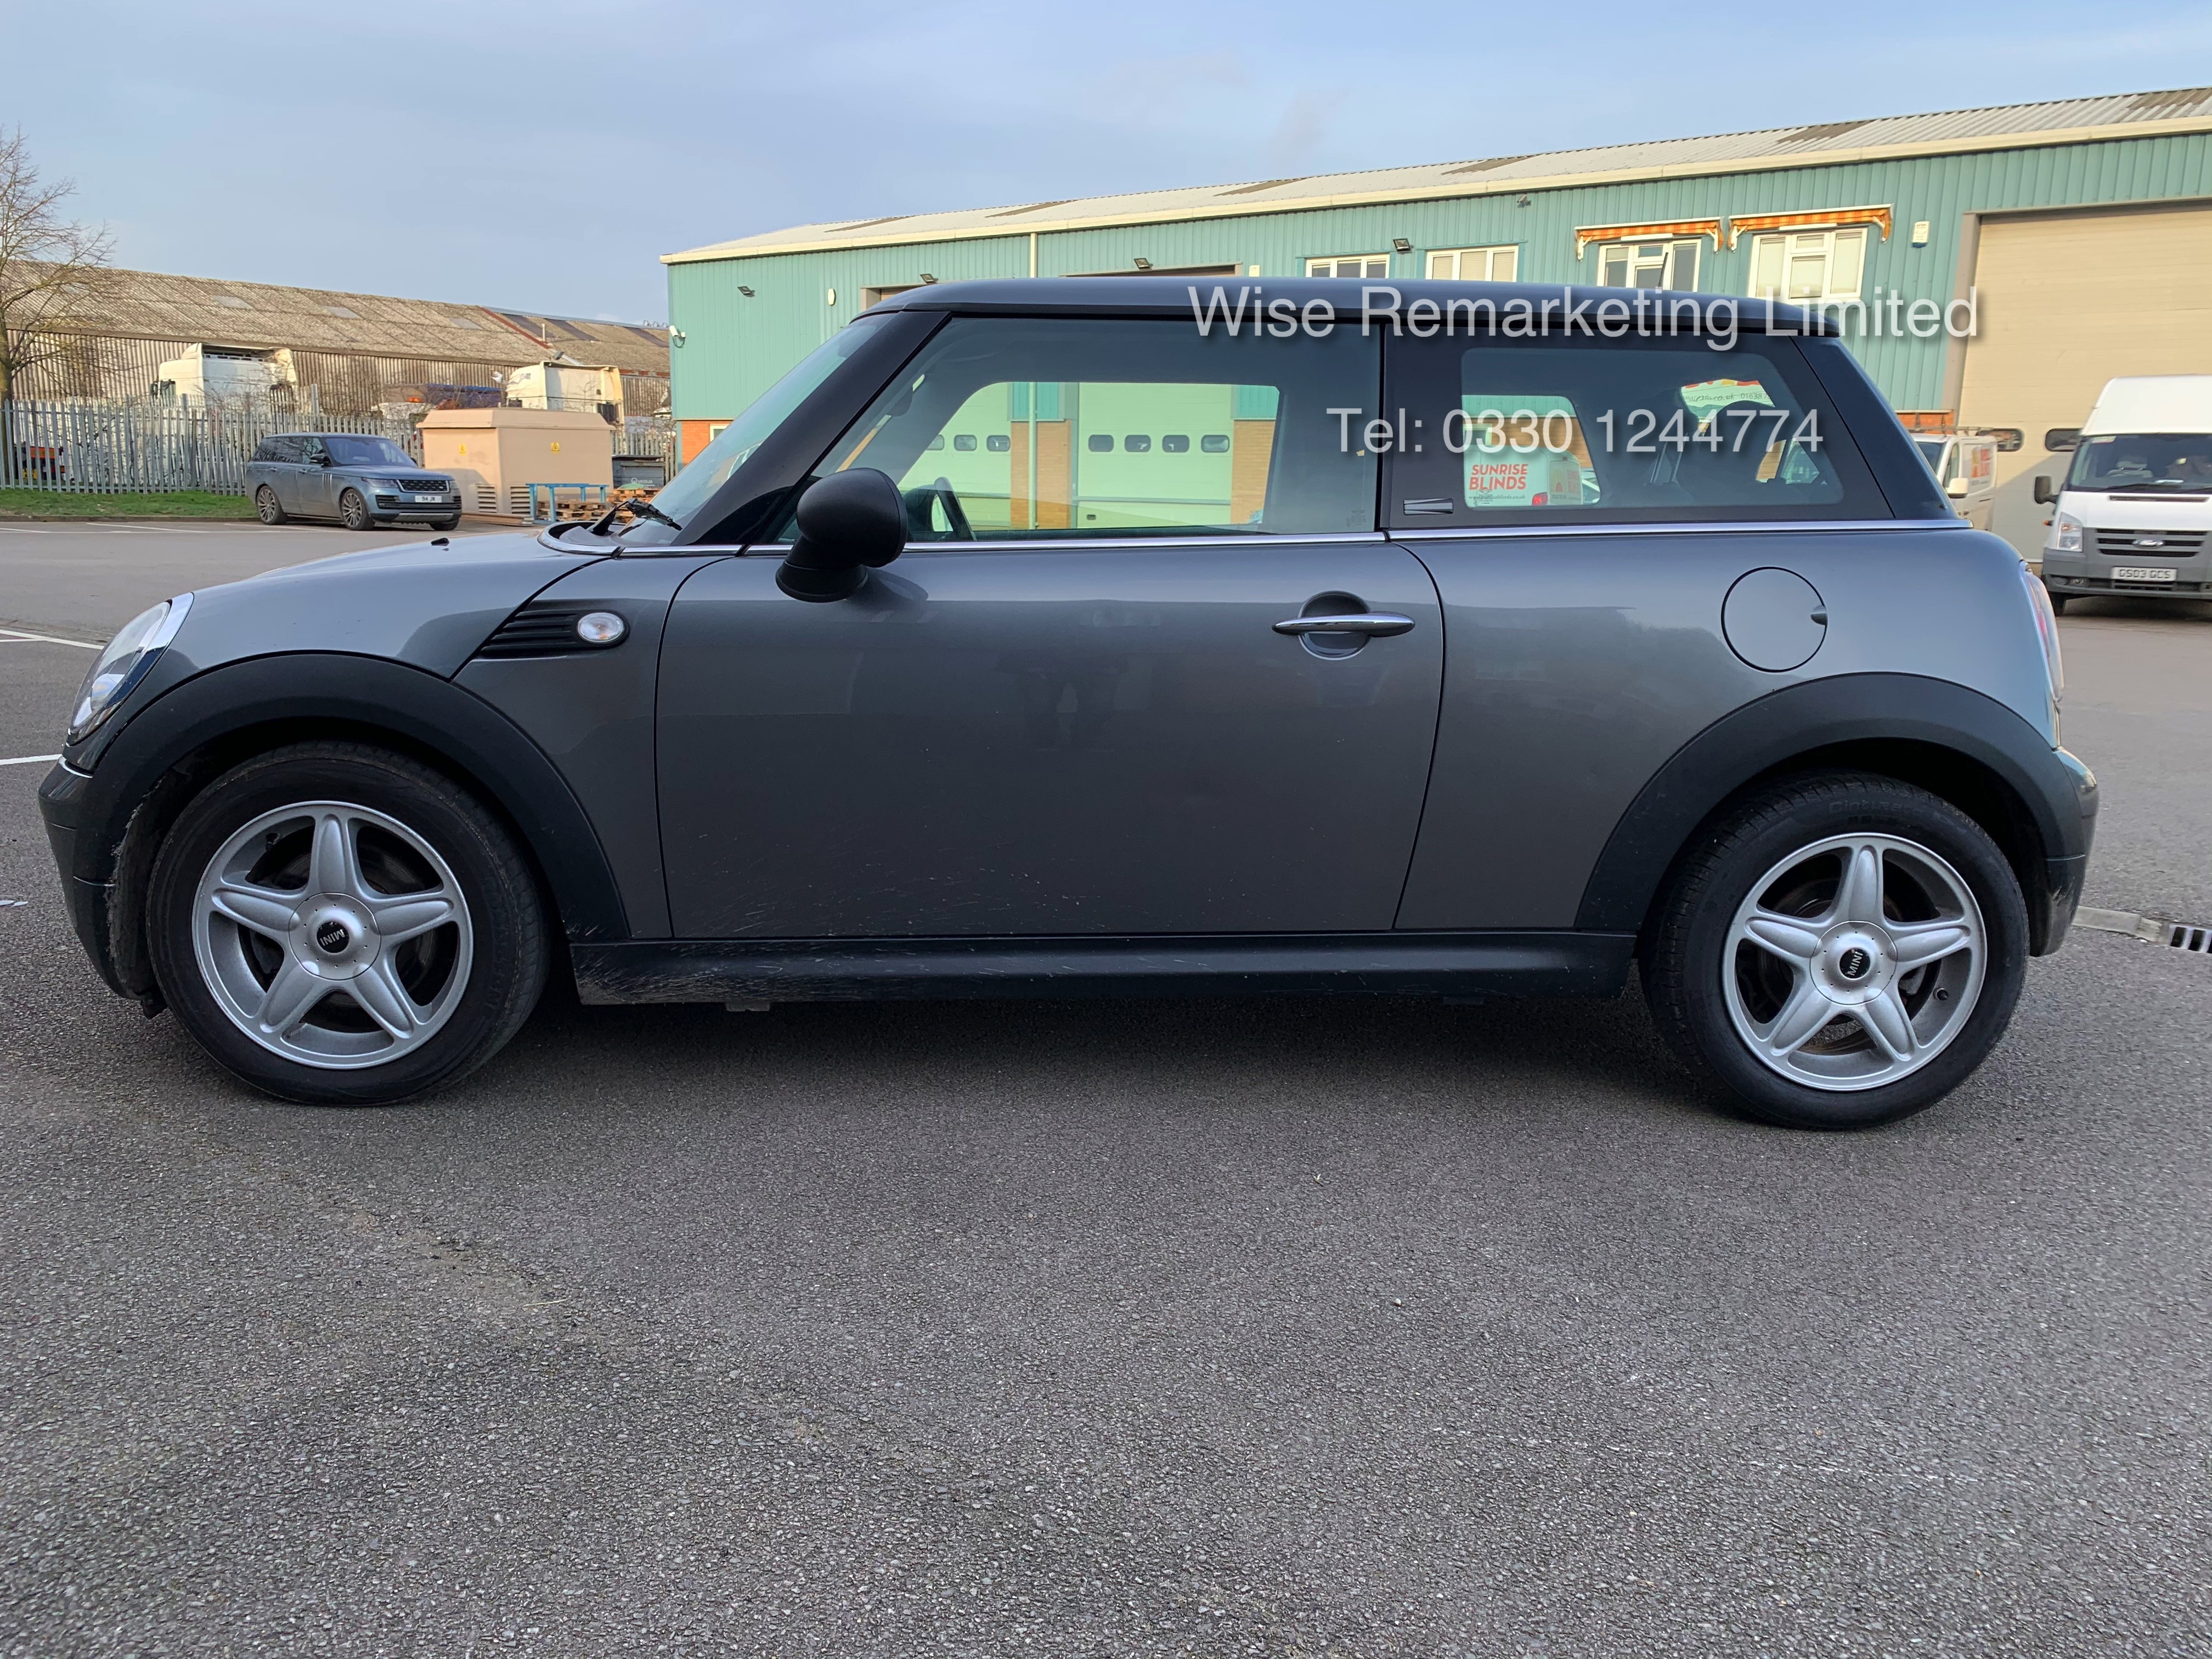 (RESERVE MET) Mini One Graphite 1.4 Petrol - 2010 Model - Service History - 6 Speed - Air Con - - Image 6 of 19